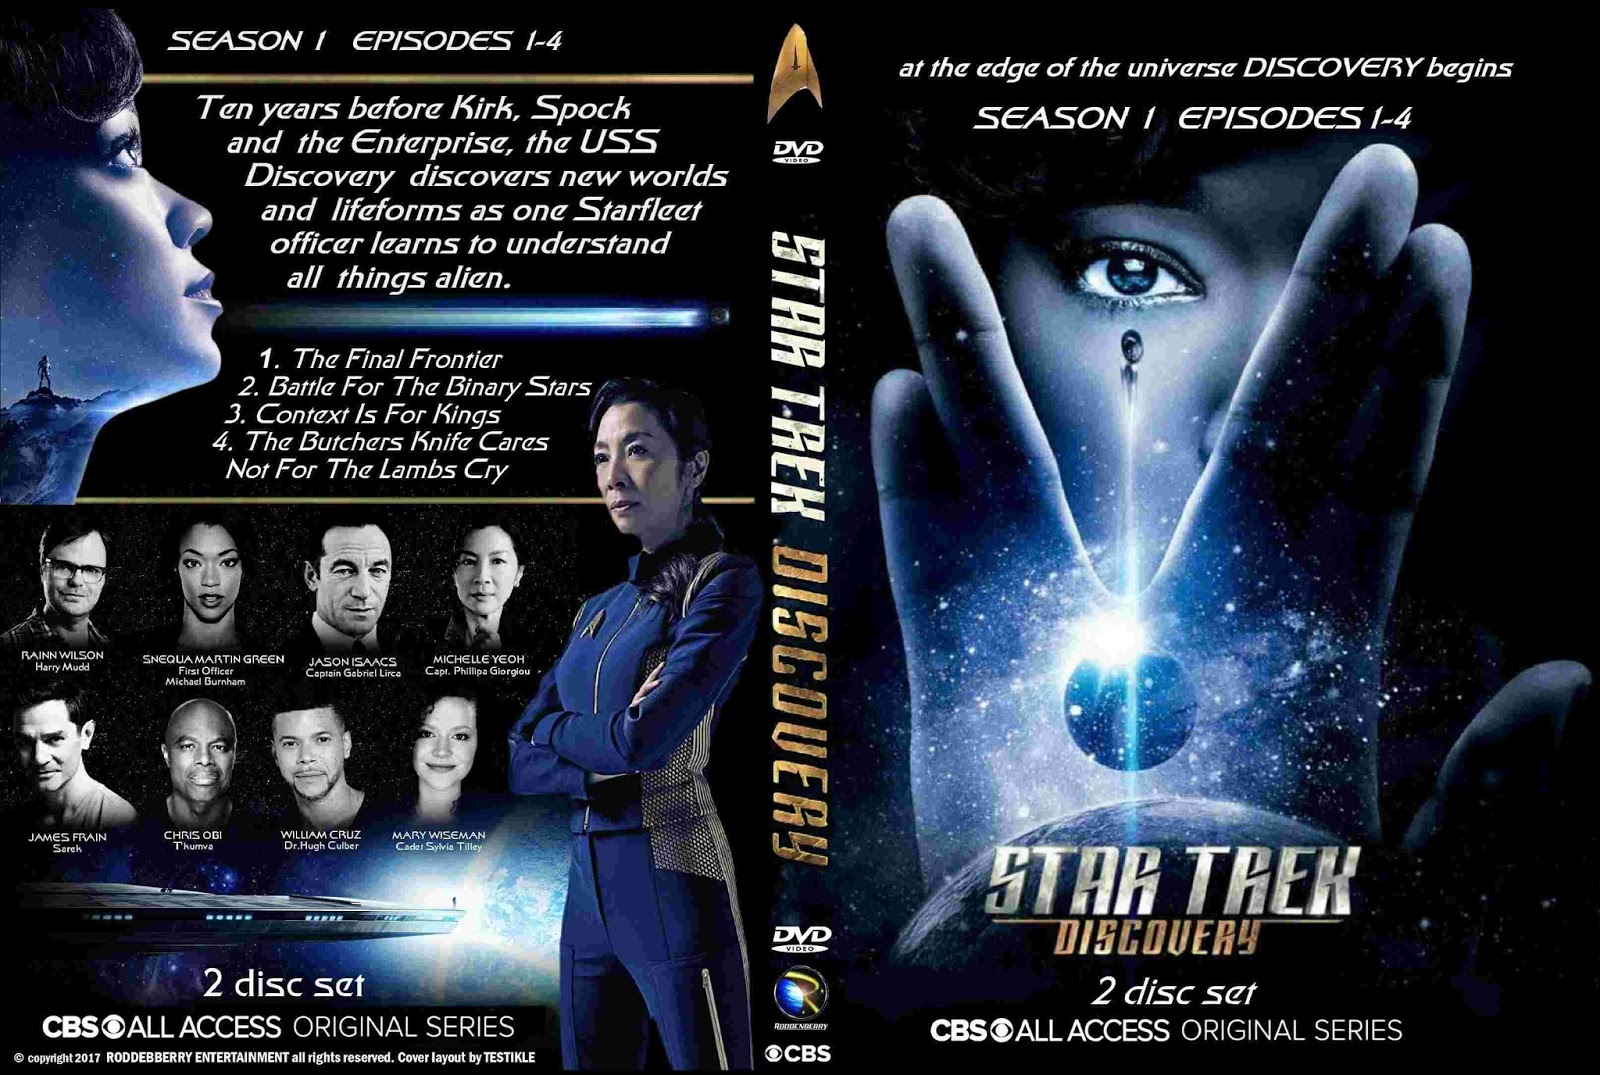 Star Trek Discovery Dvd